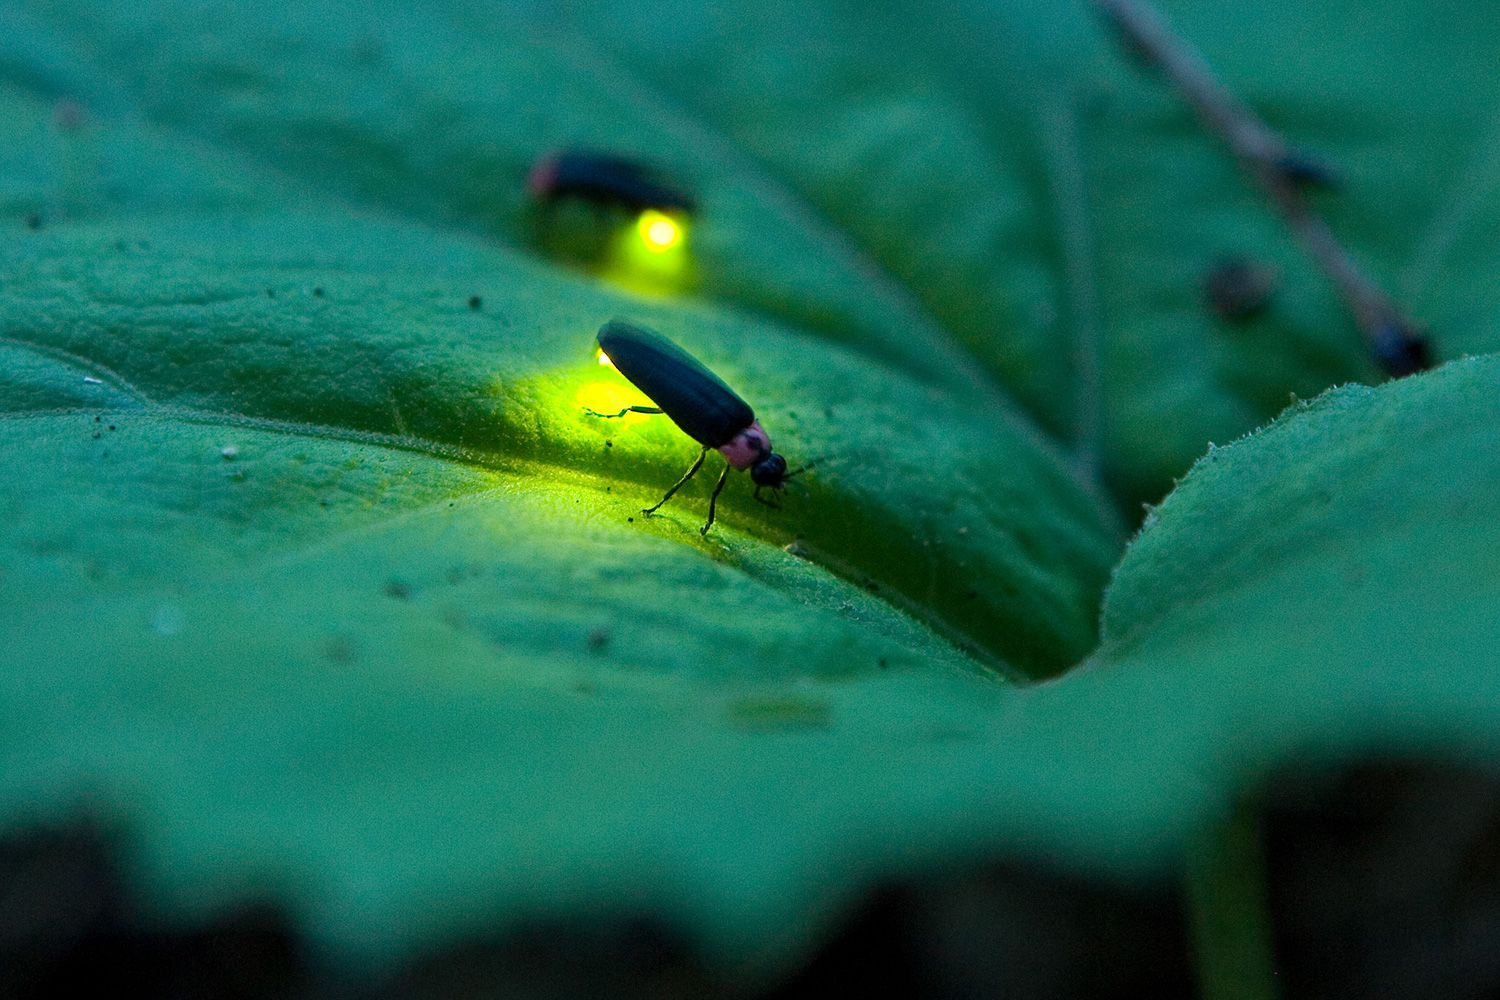 10 fascinating facts about fireflies and lightning bugs